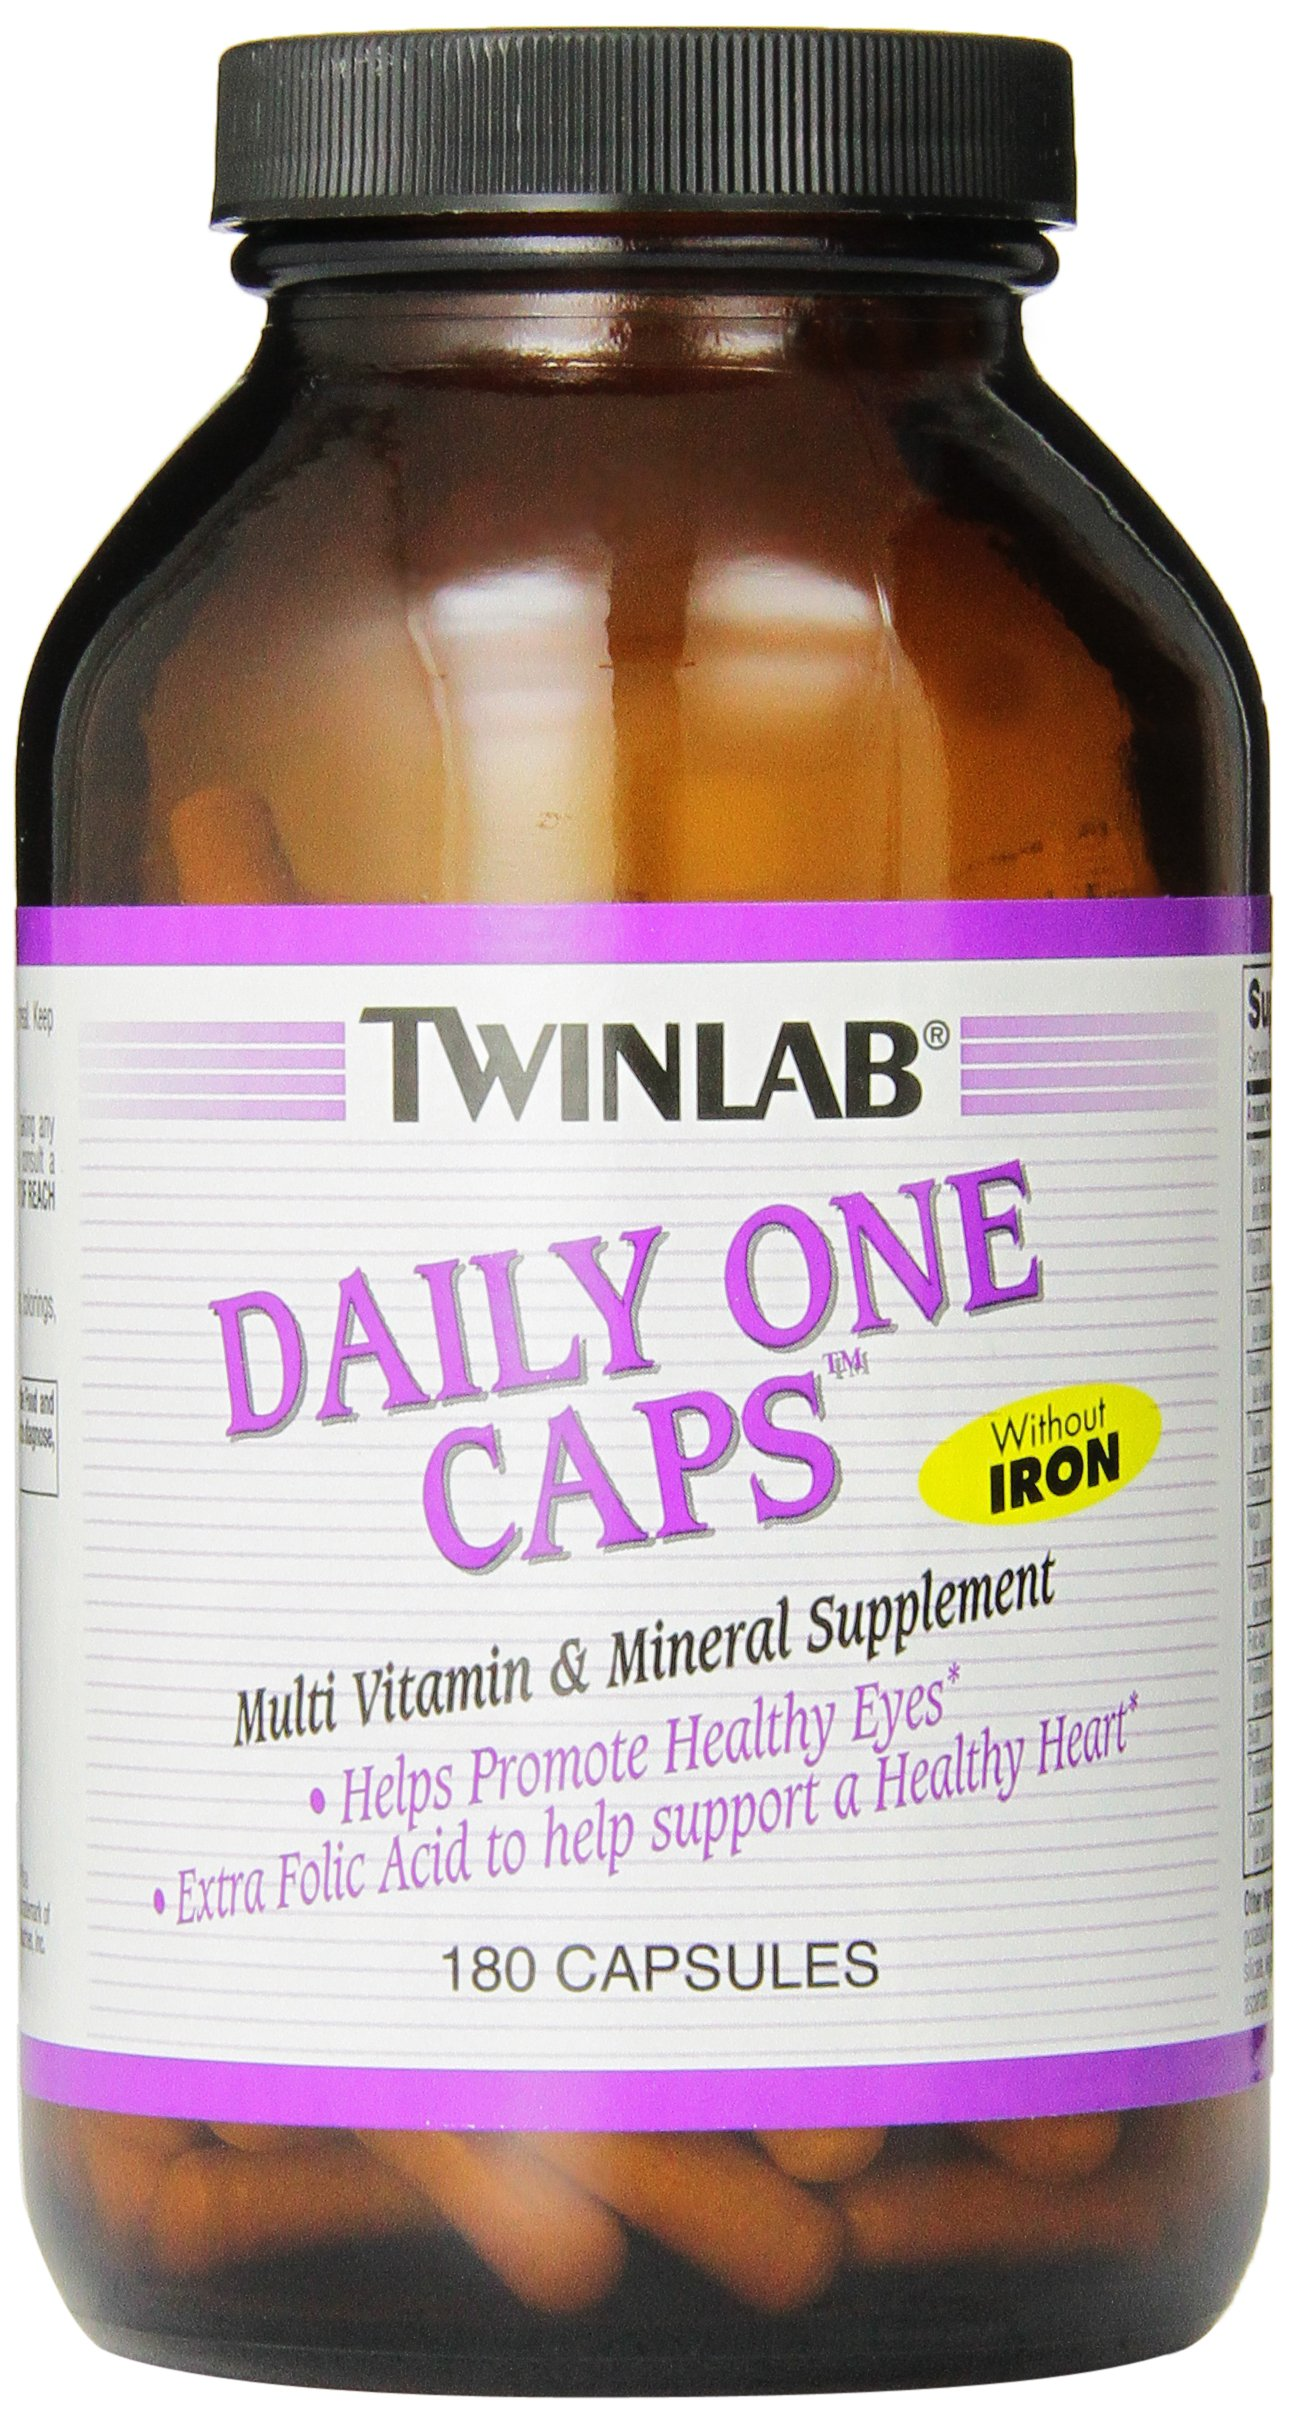 Twinlab Daily One Caps Multi-Vitamin and Multi-Minerals without Iron, 180 Capsules by Twinlab